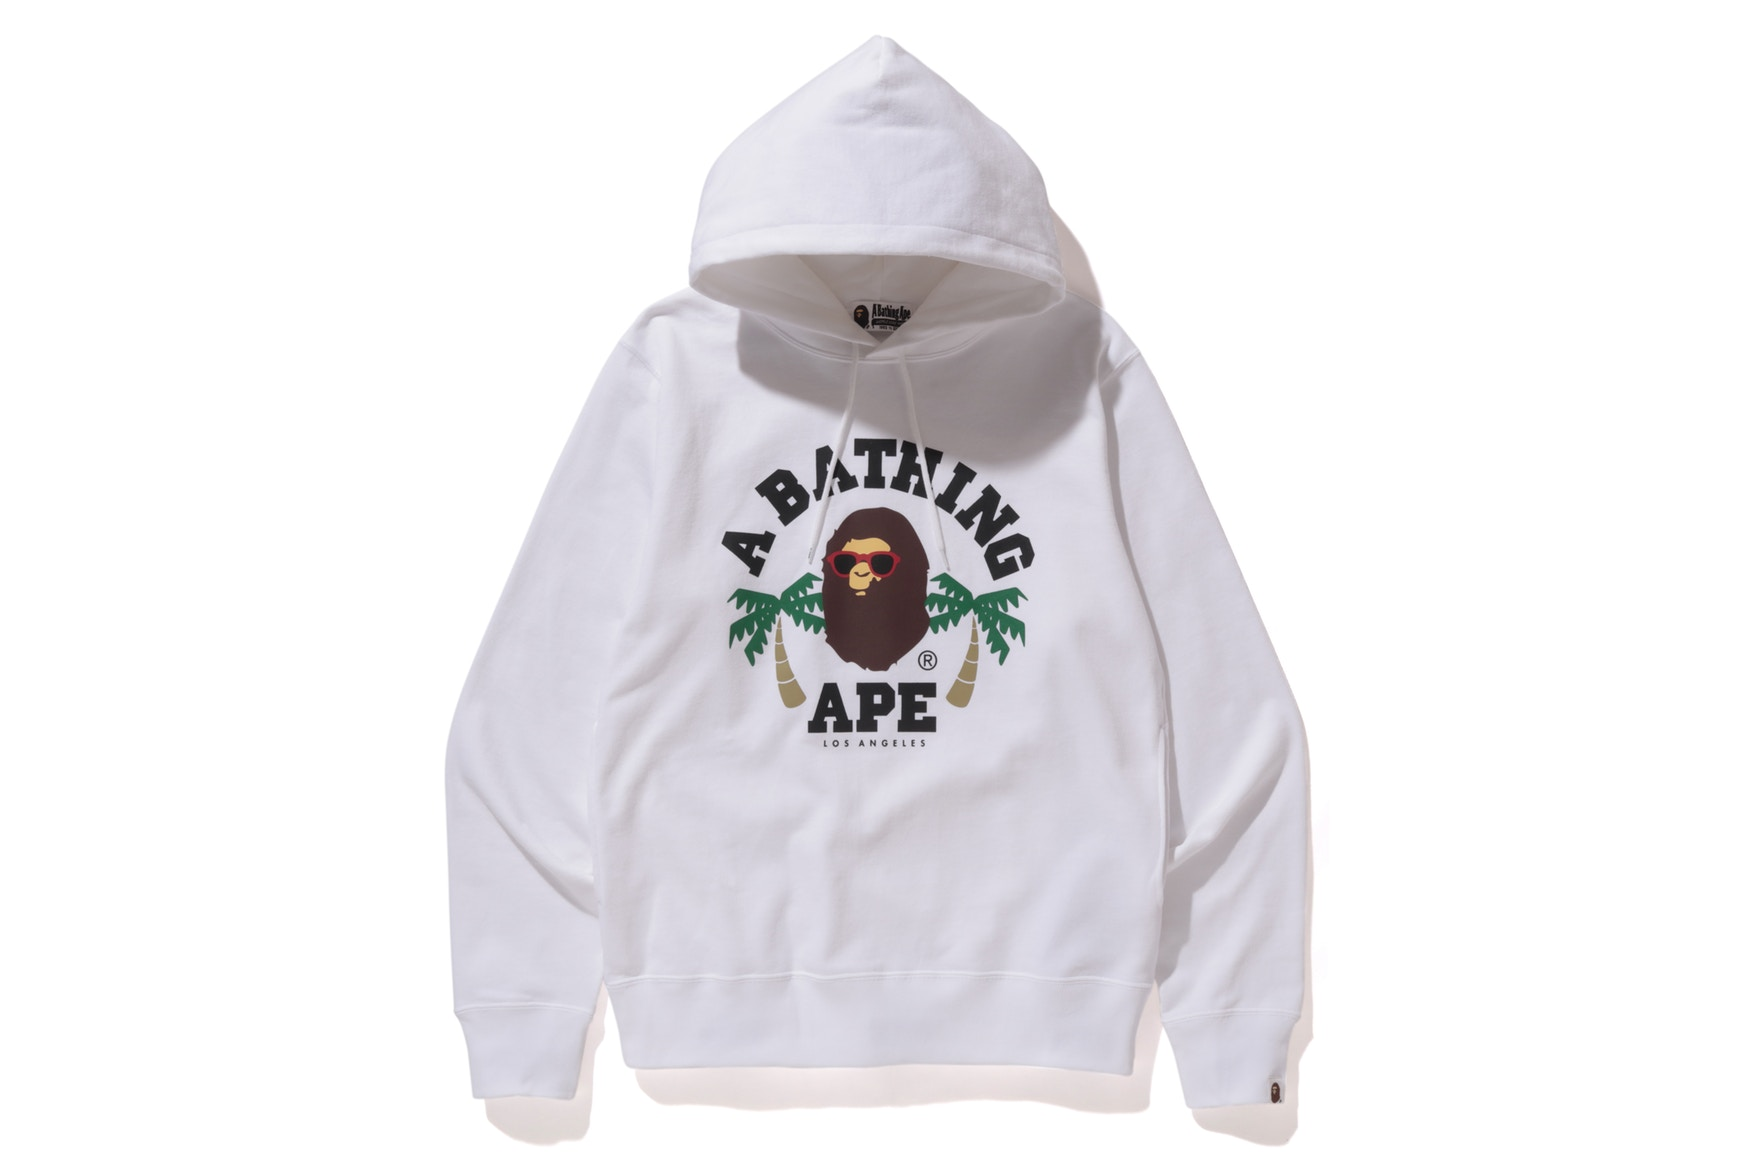 bape-a-bathing-ape-la-capsule-lookbook-50